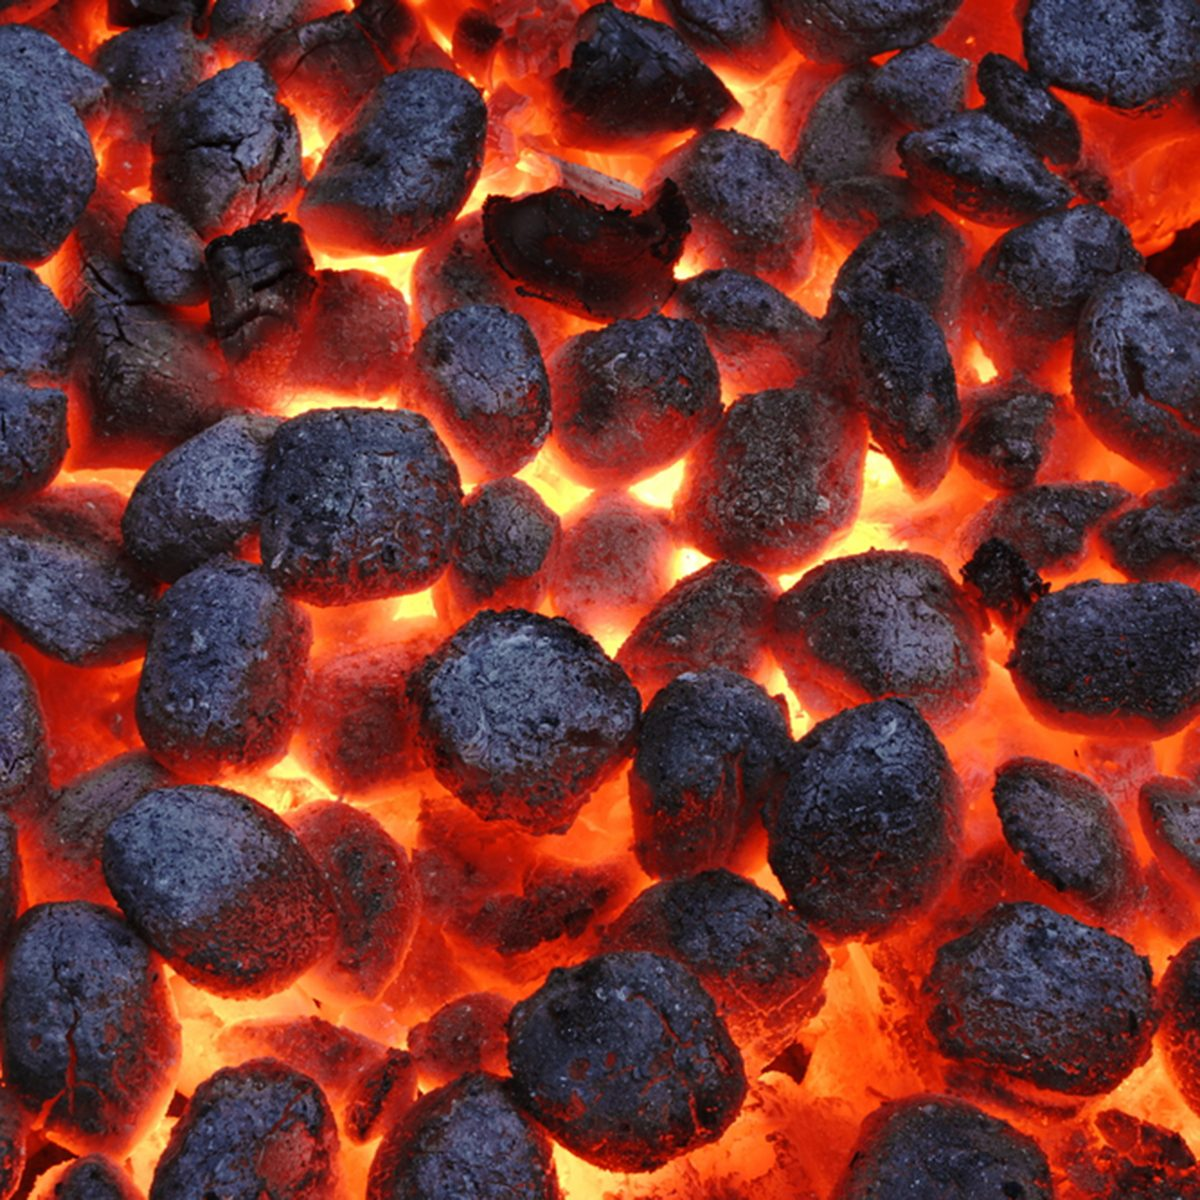 BBQ Grill Pit With Glowing And Flaming Hot Charcoal Briquettes